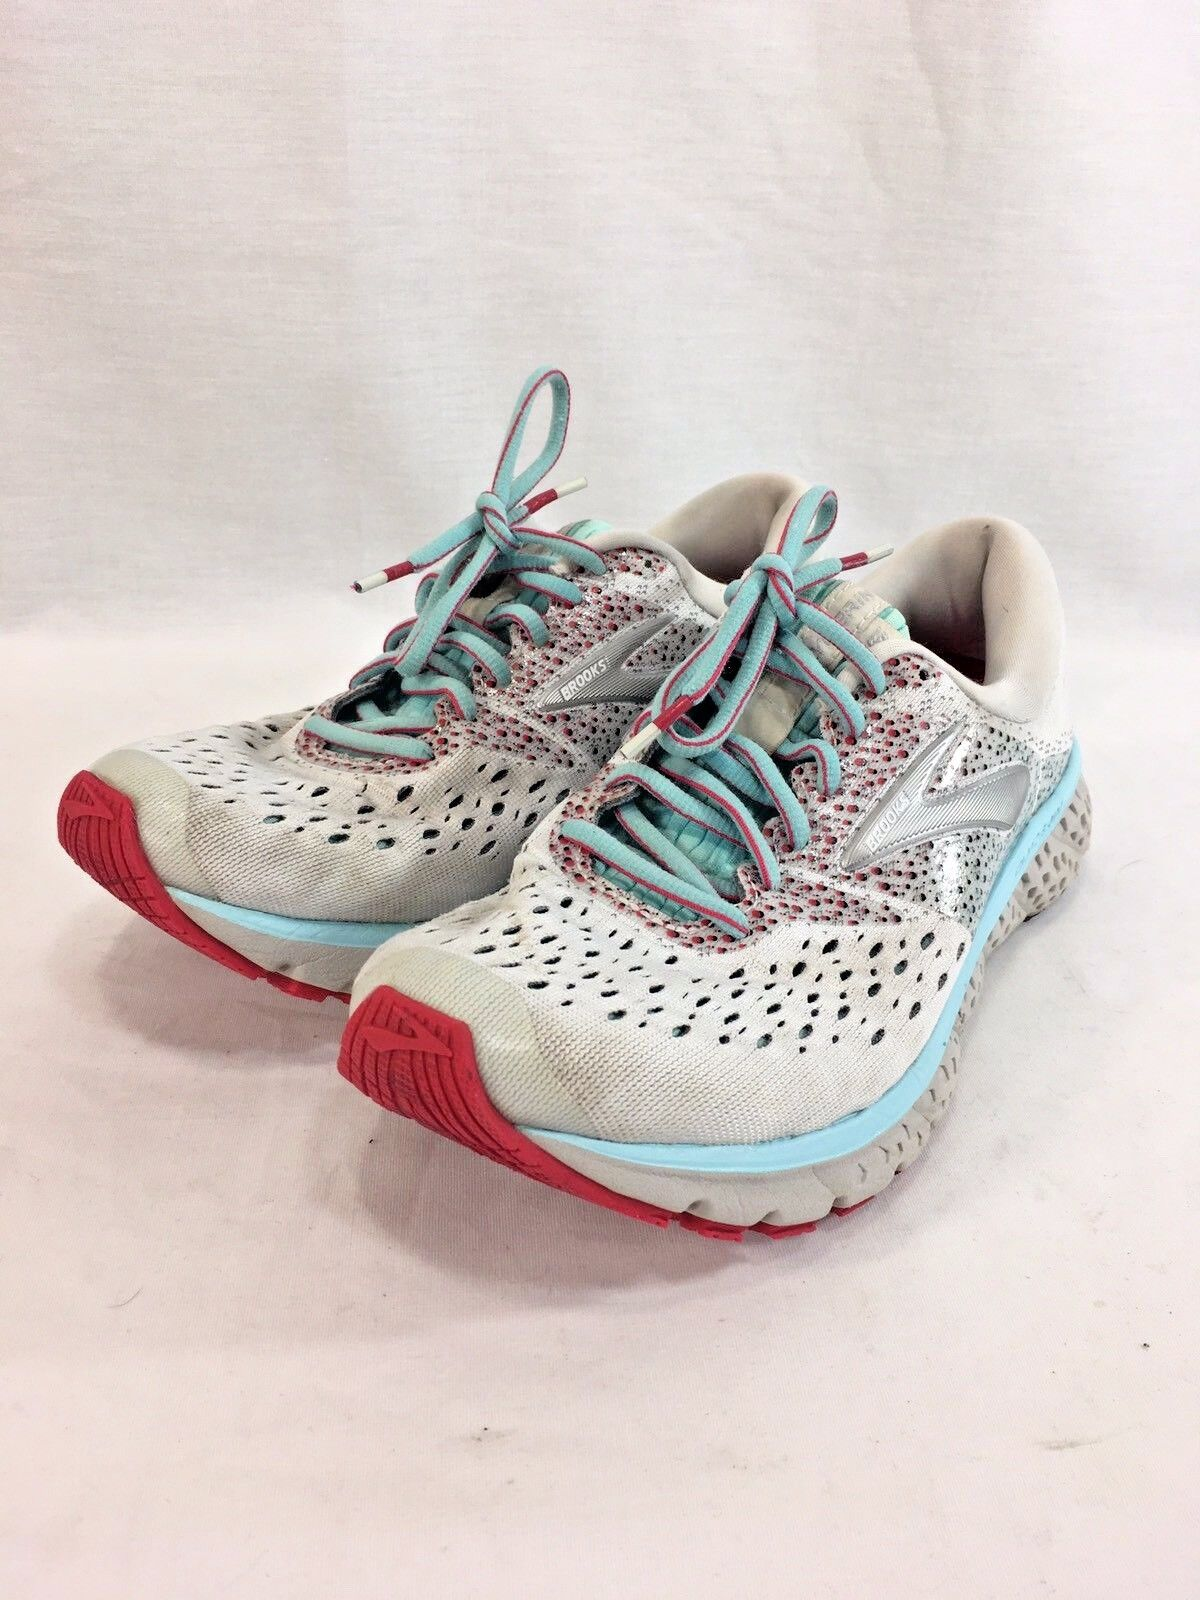 Brooks Glycerin 16 Sneakers shoes Womens 8 M White Pink bluee Lace Up Running